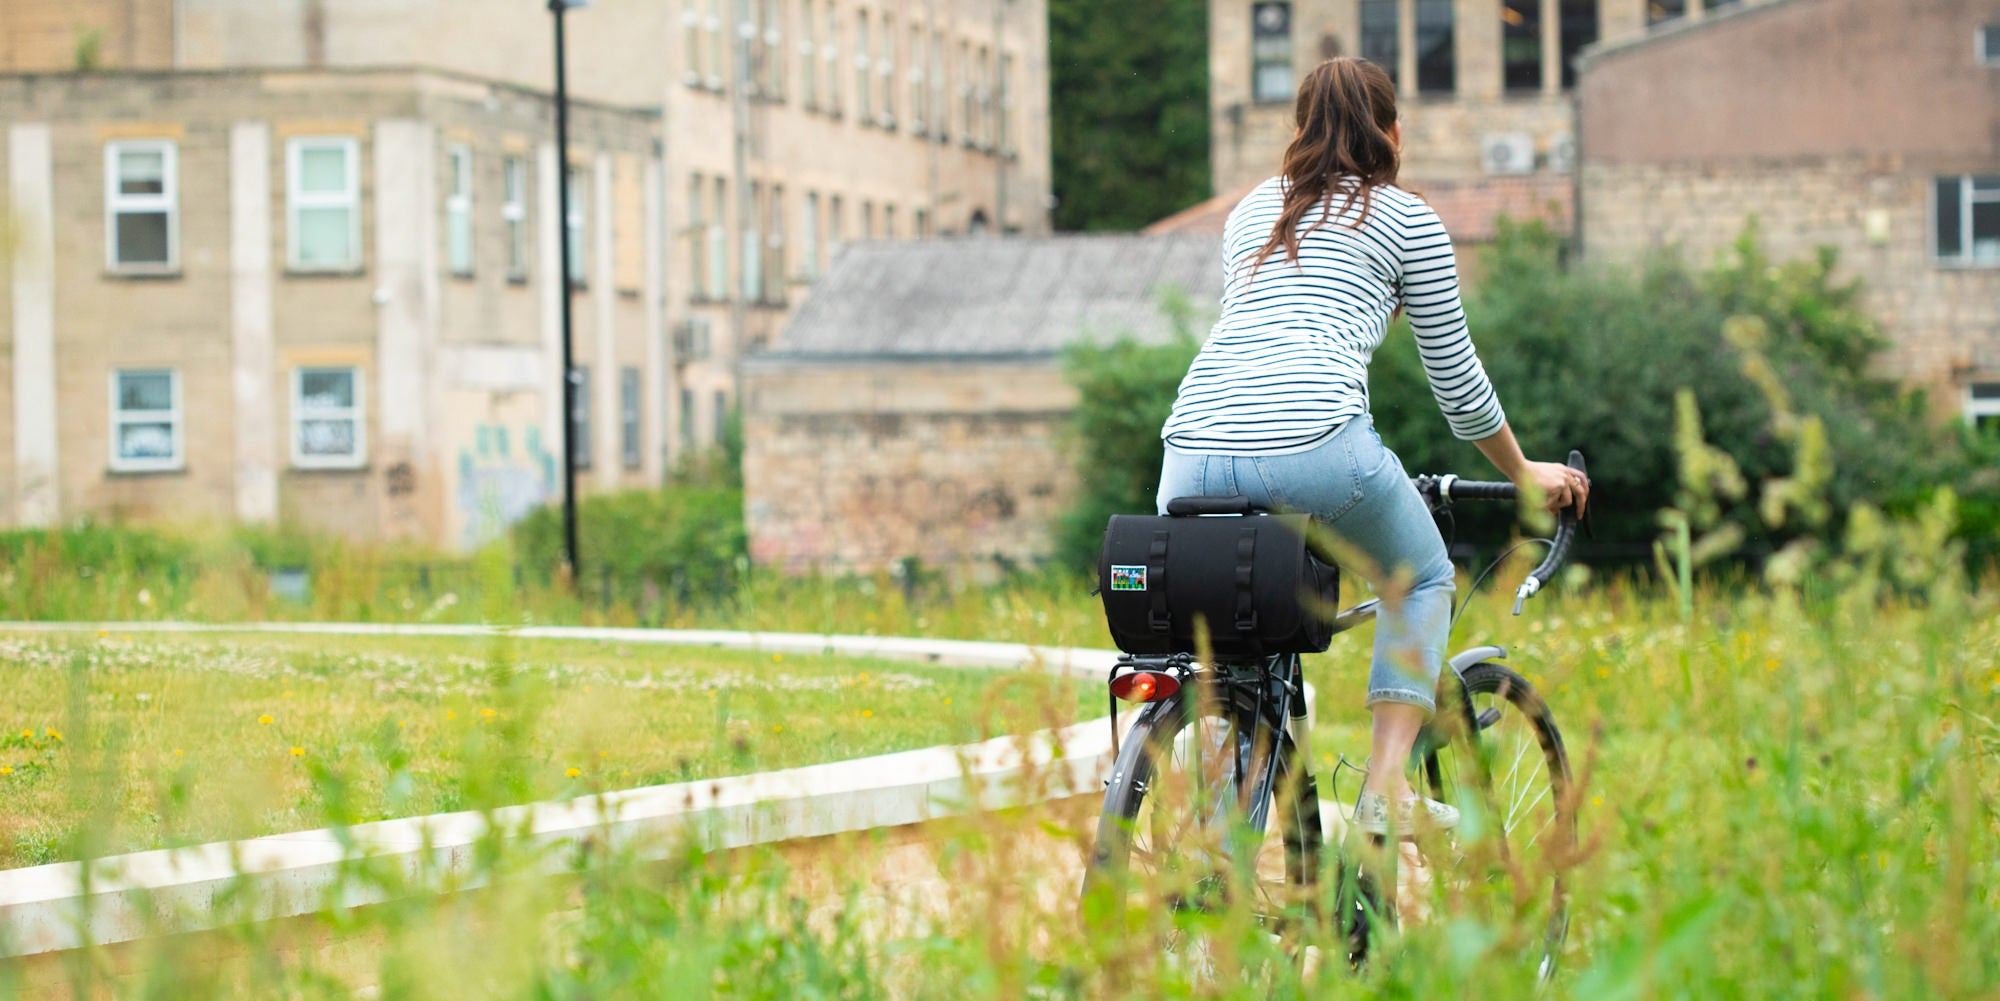 woman cycling to work through a park, commuting to work puts you in a good mood